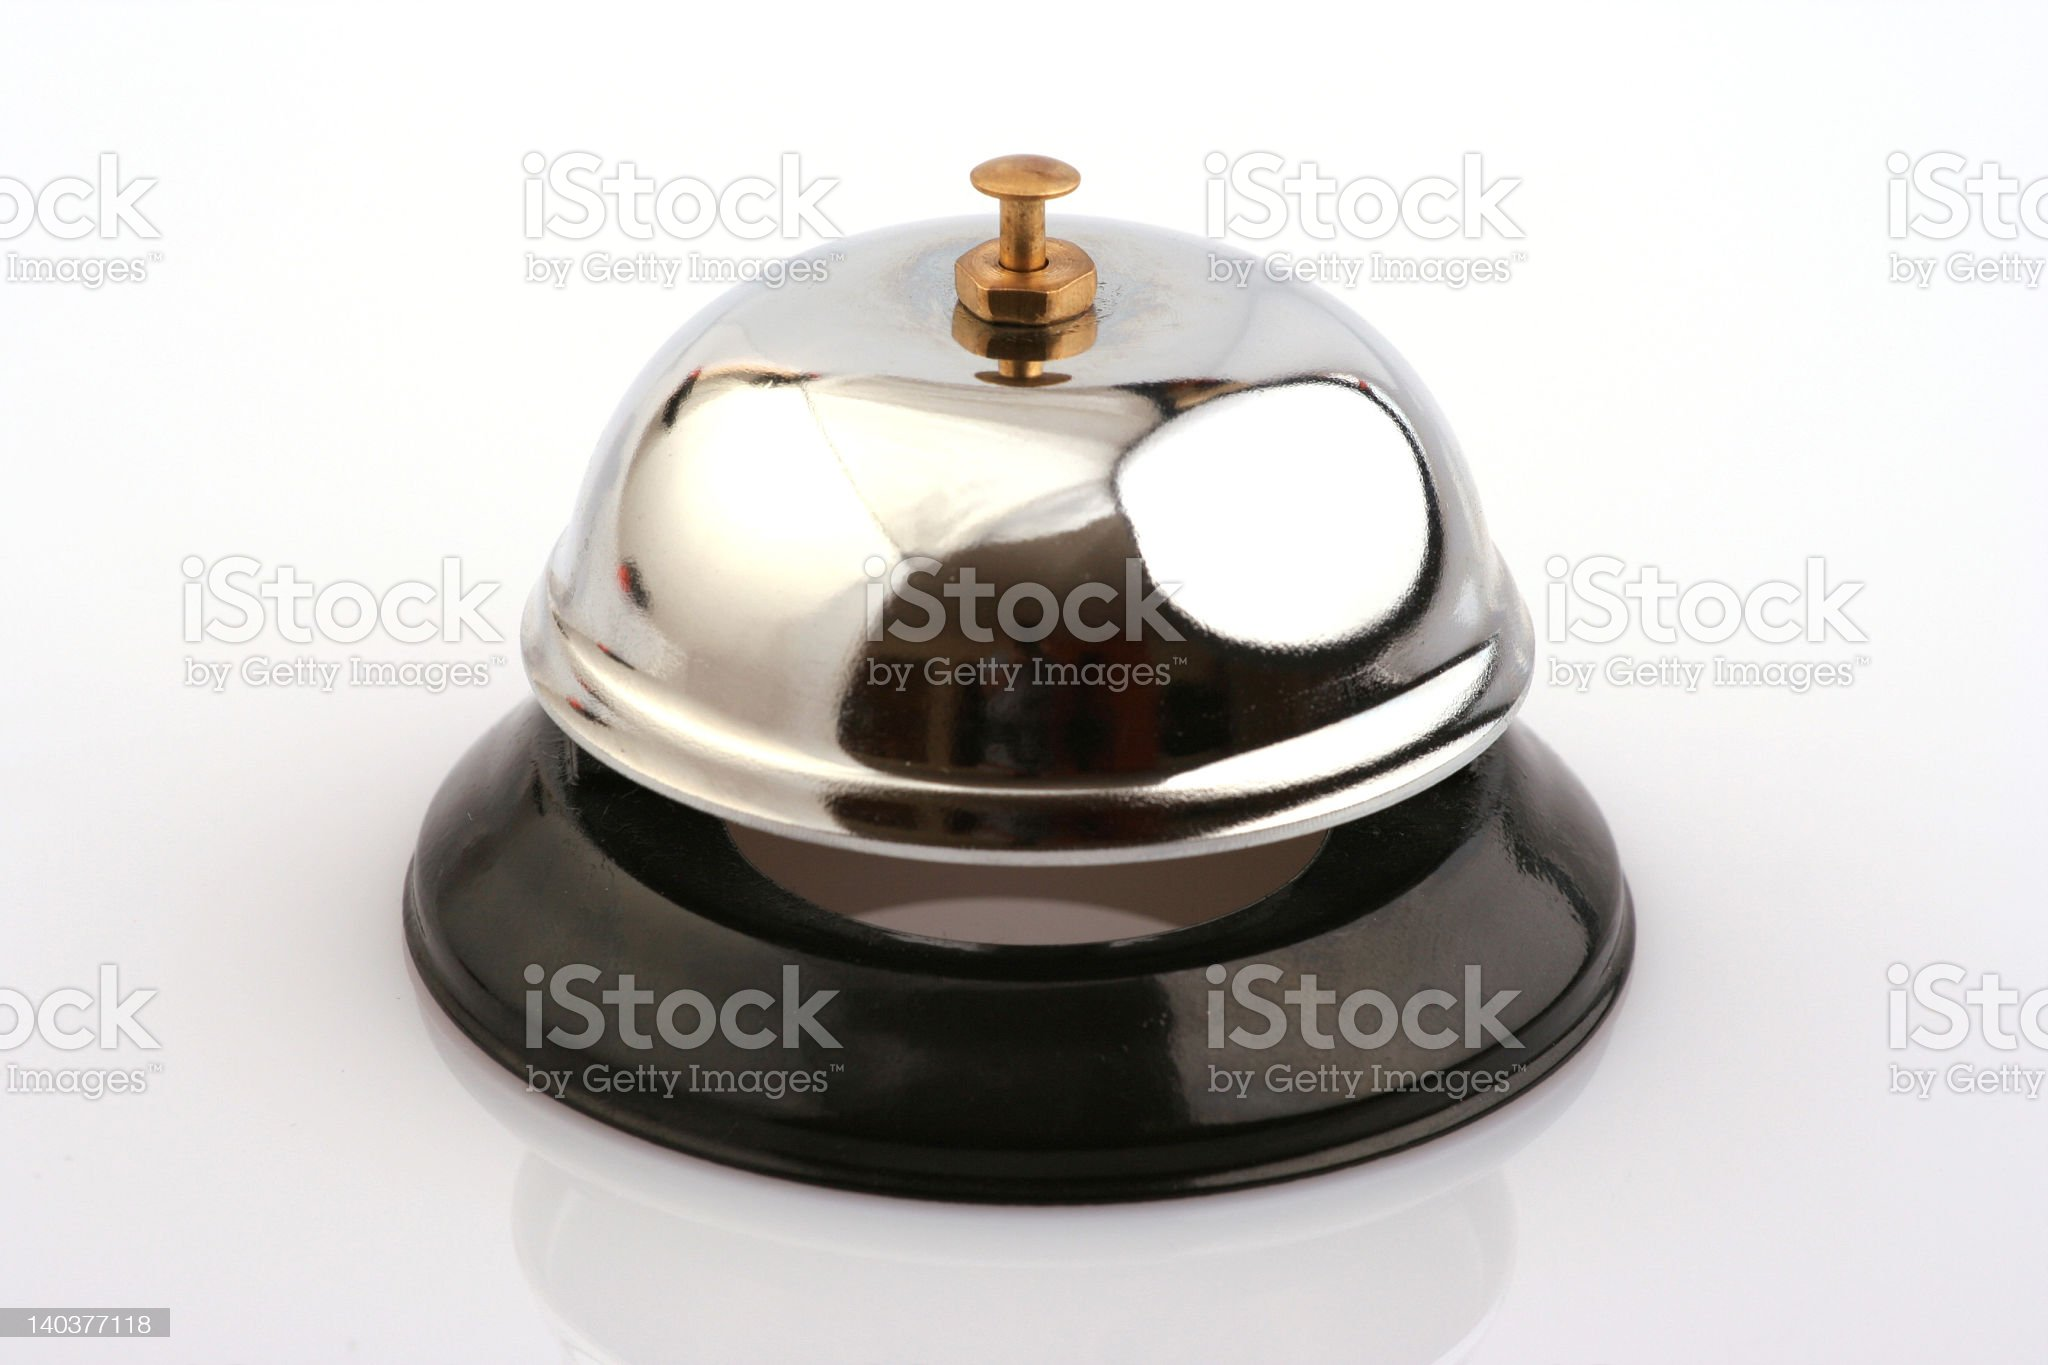 A plain service bell used to get someone's attention  royalty-free stock photo